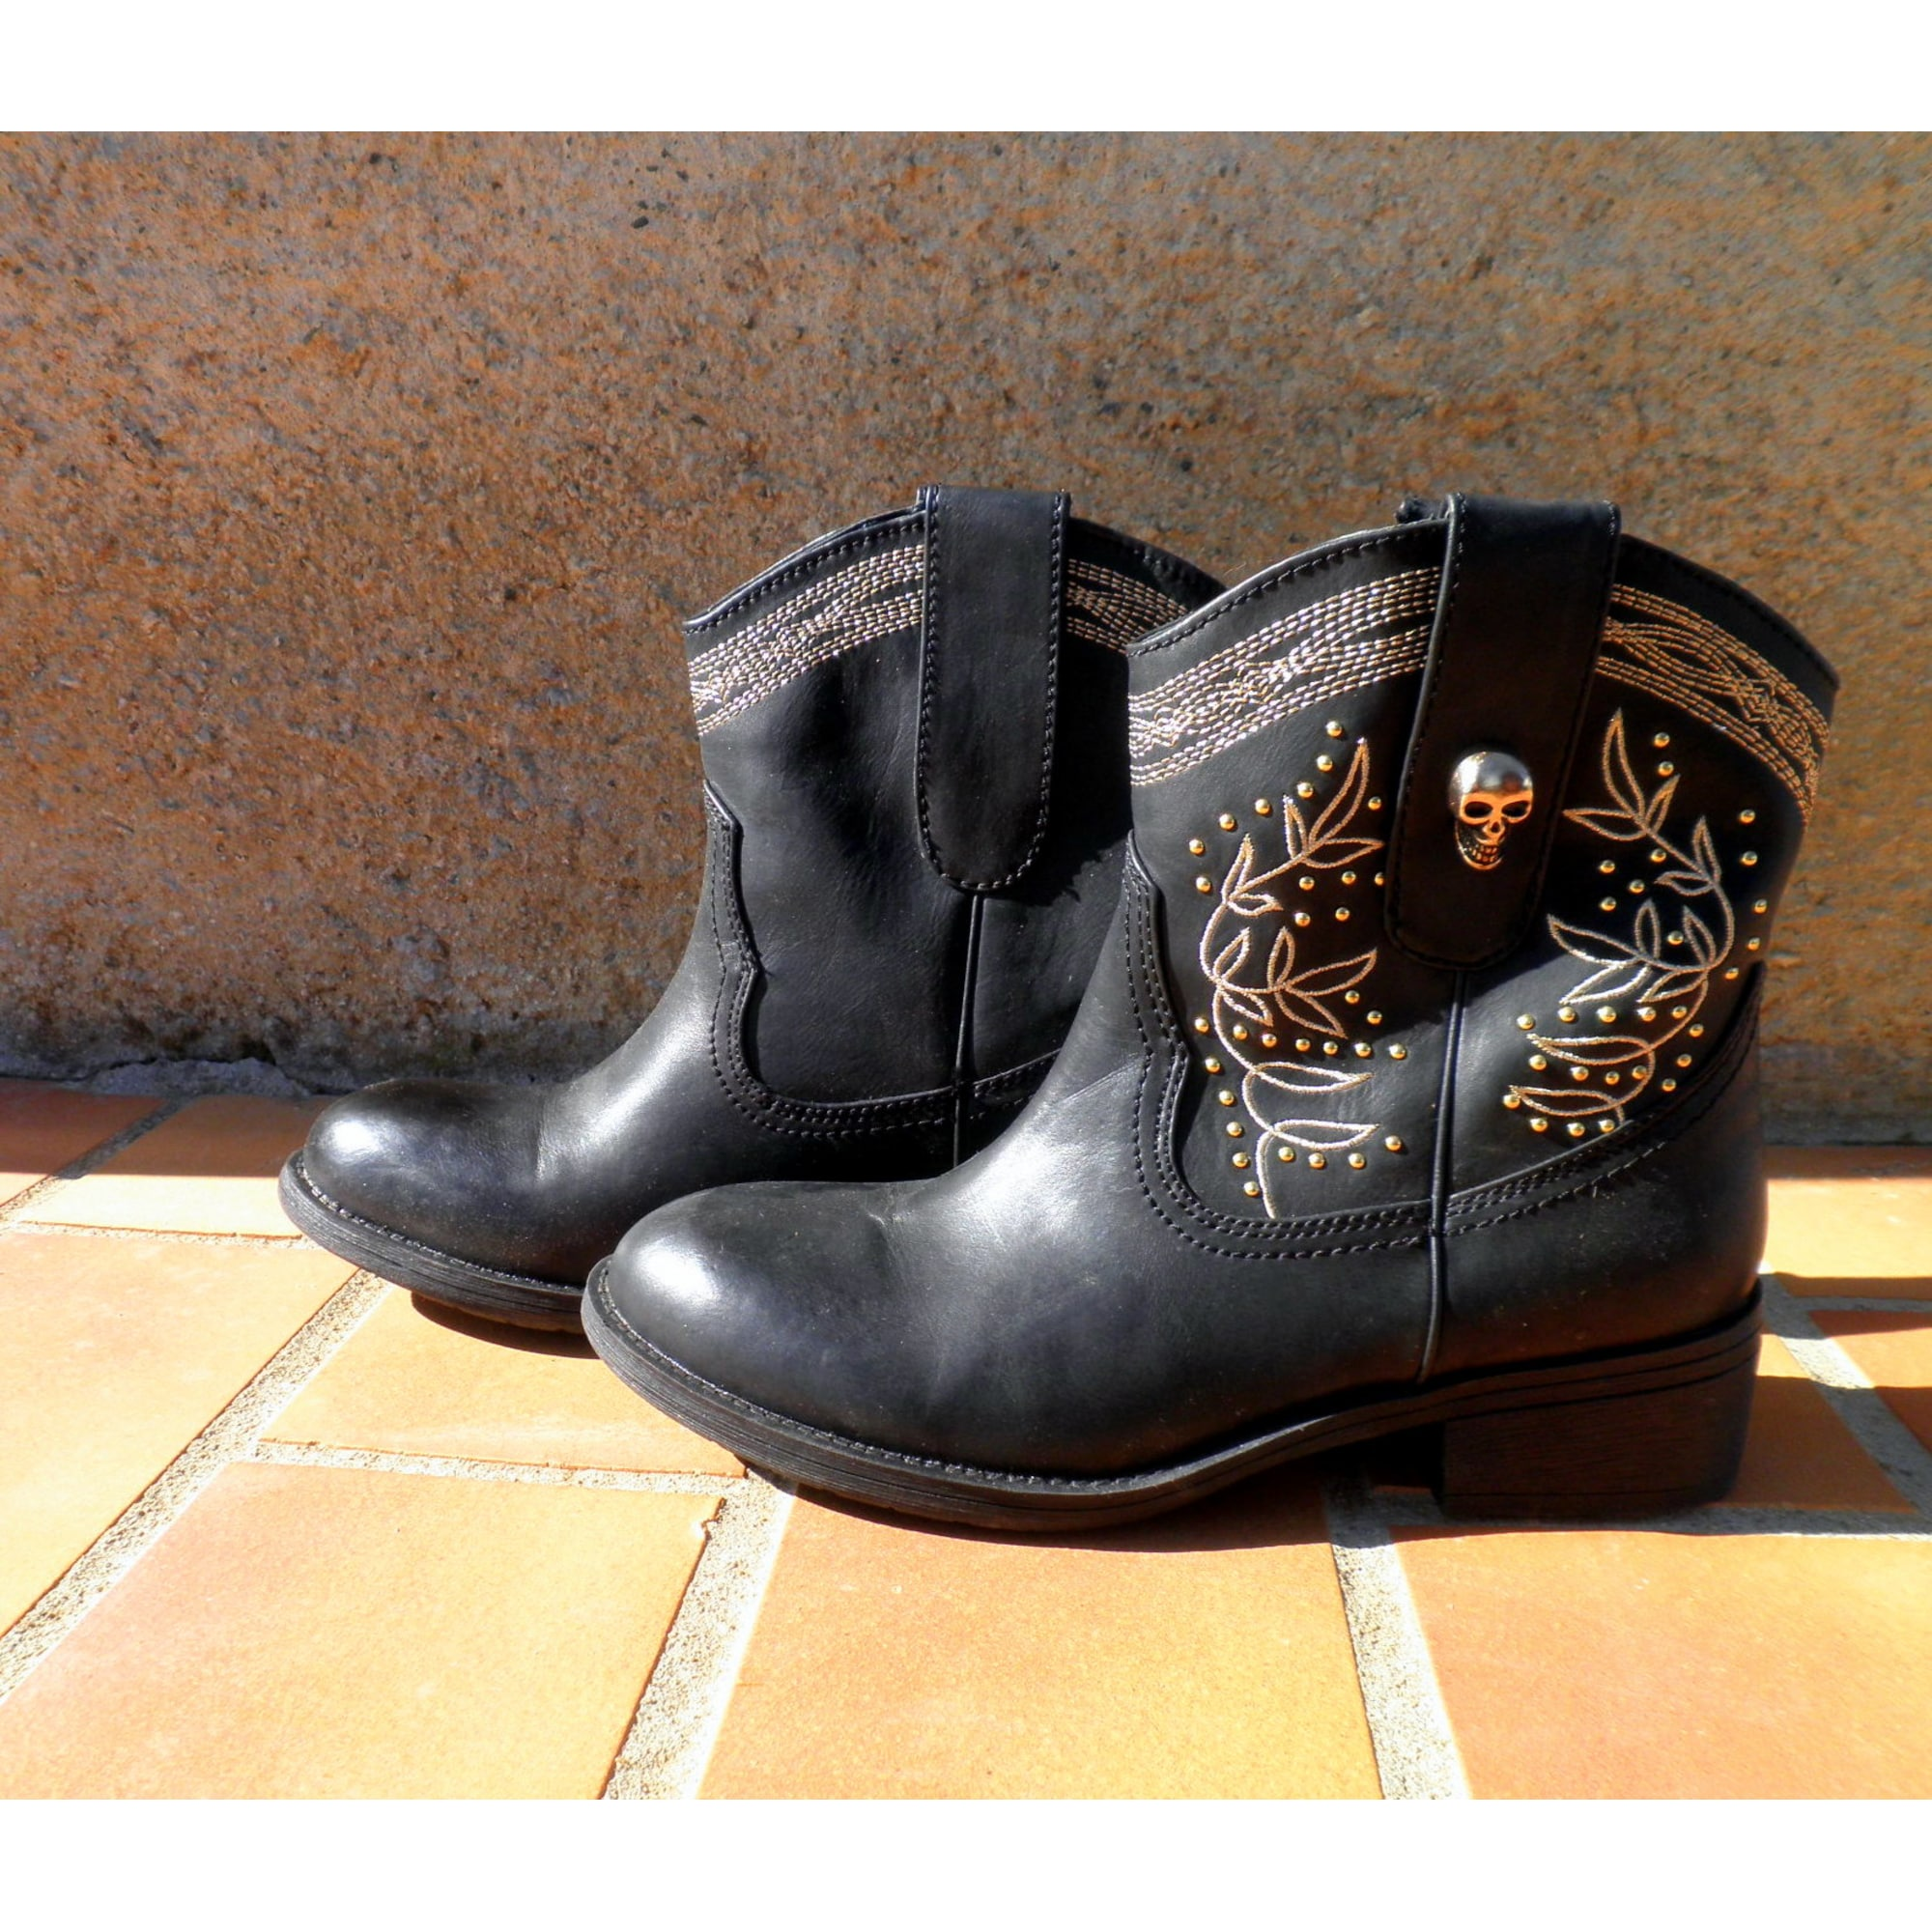 f68ce7d0c6 Santiags, bottines, low boots cowboy CLOSER BY CHAUSSEA 38 noir ...